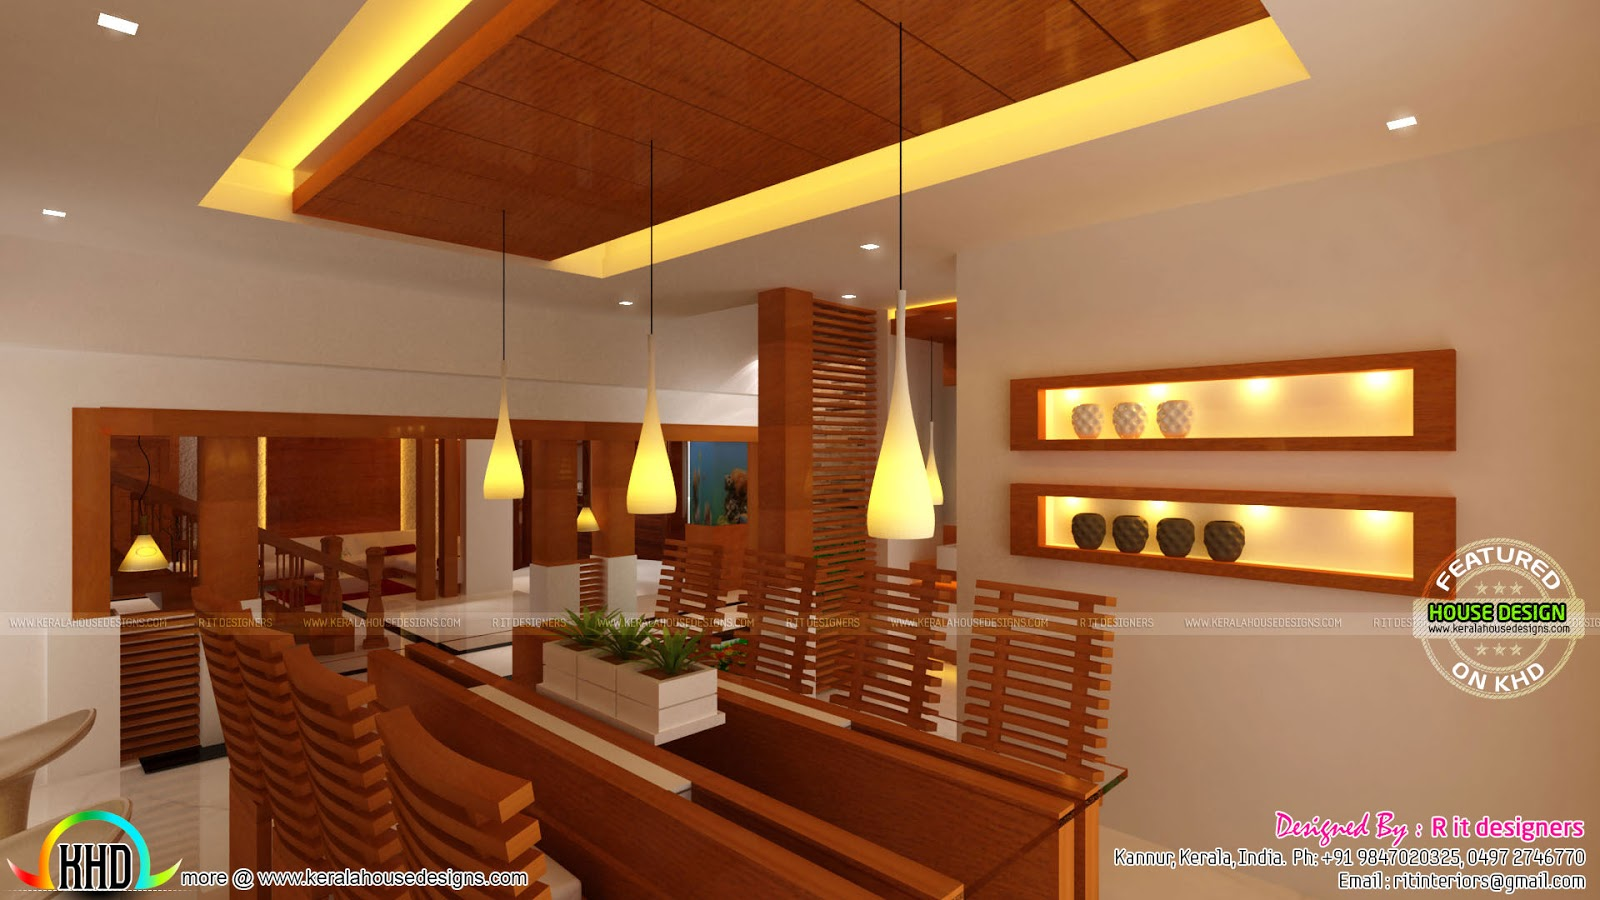 Wooden finish interior designs kerala home design and for Interior house plans with photos